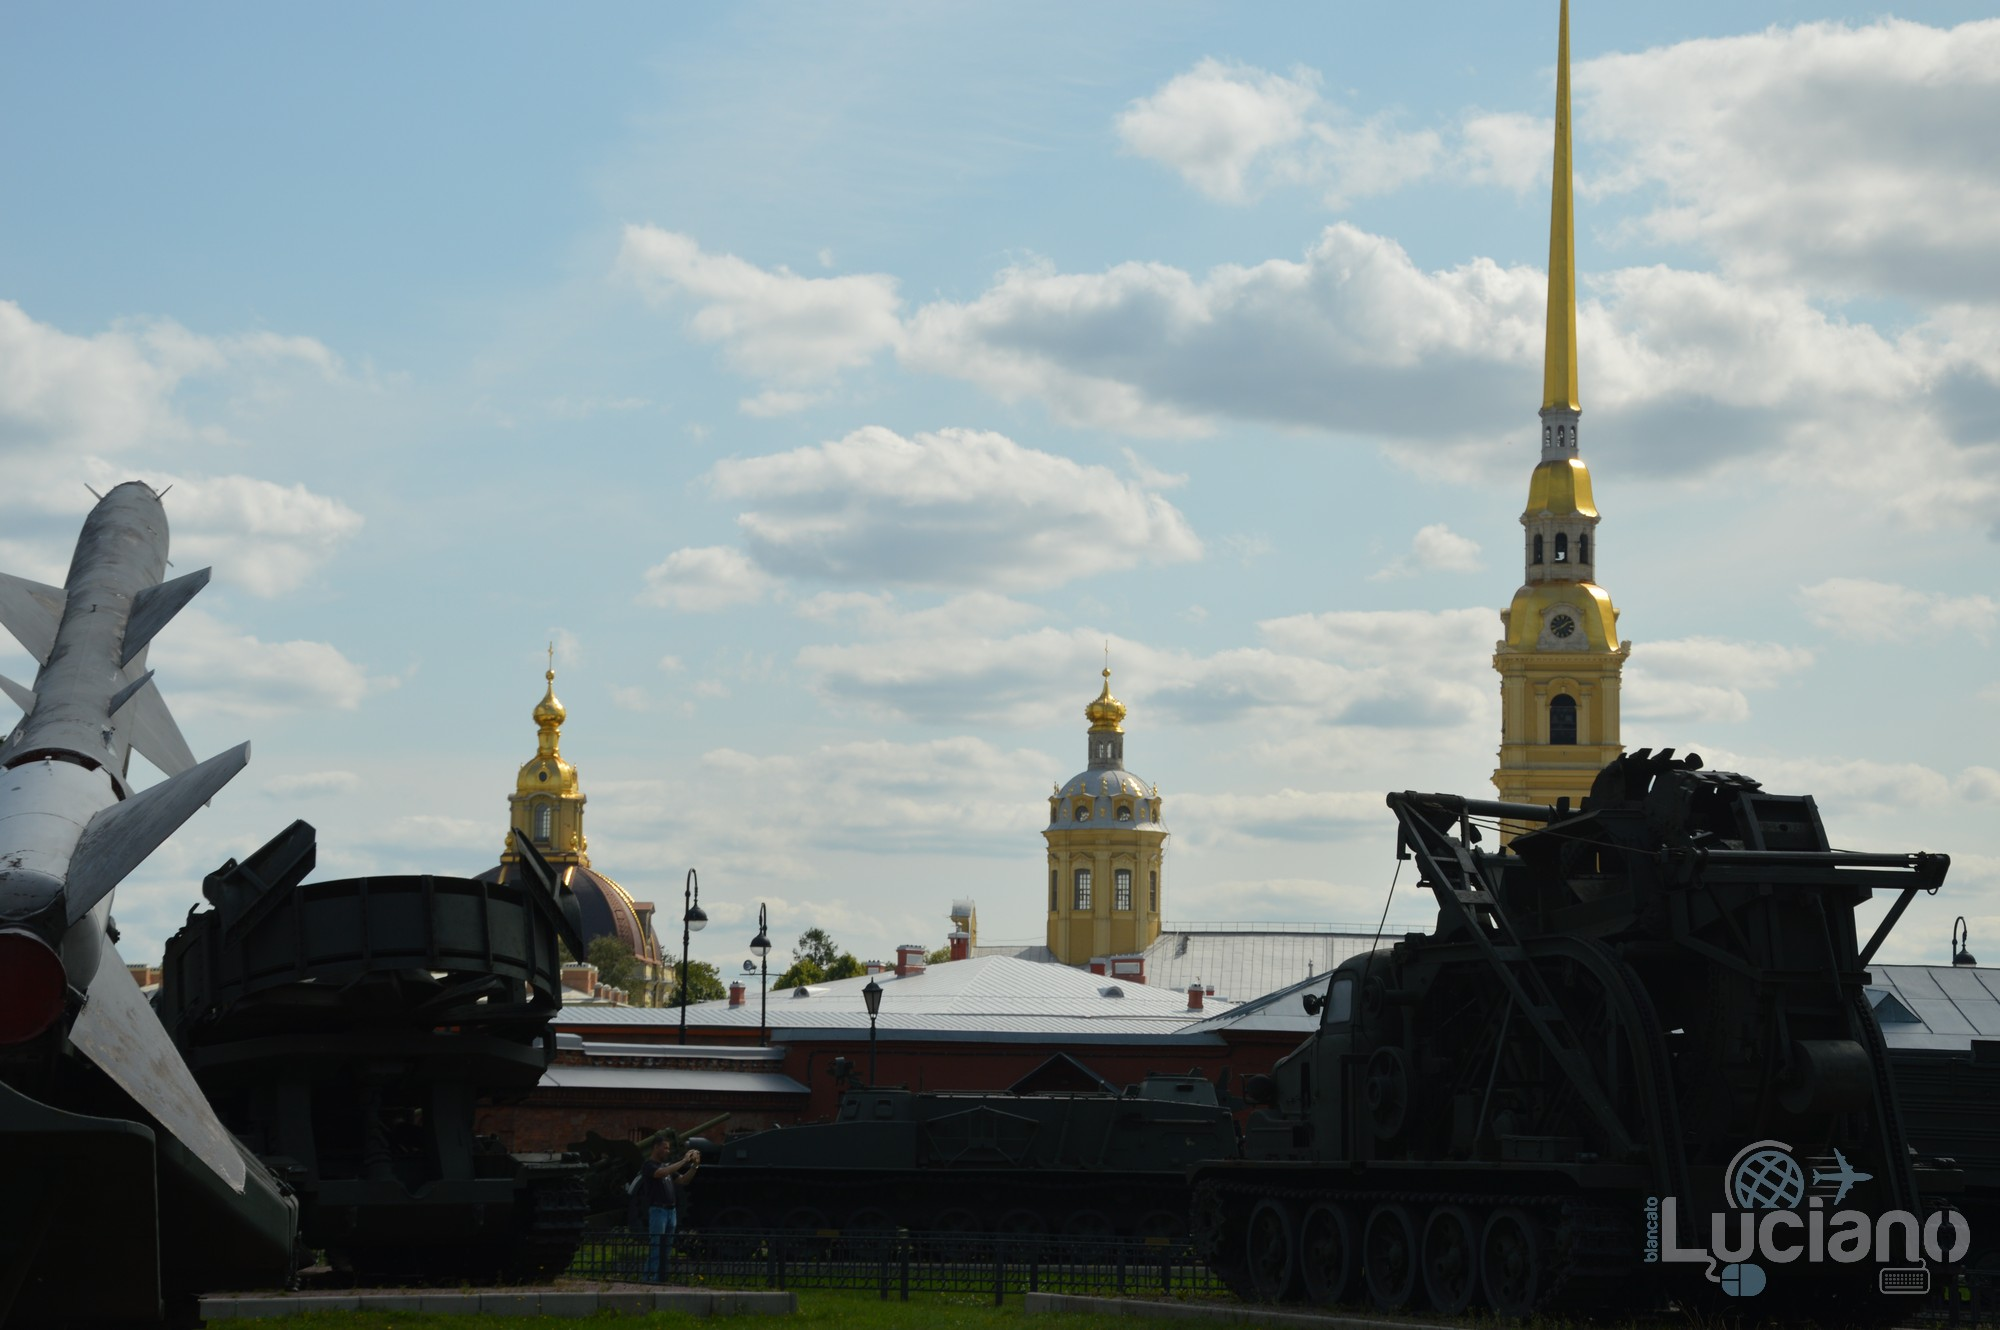 Military-Historical-Museum-of-Artillery-Engineer-and-Signal-Corps-St-Petersburg-Russia-Luciano-Blancato- (94)